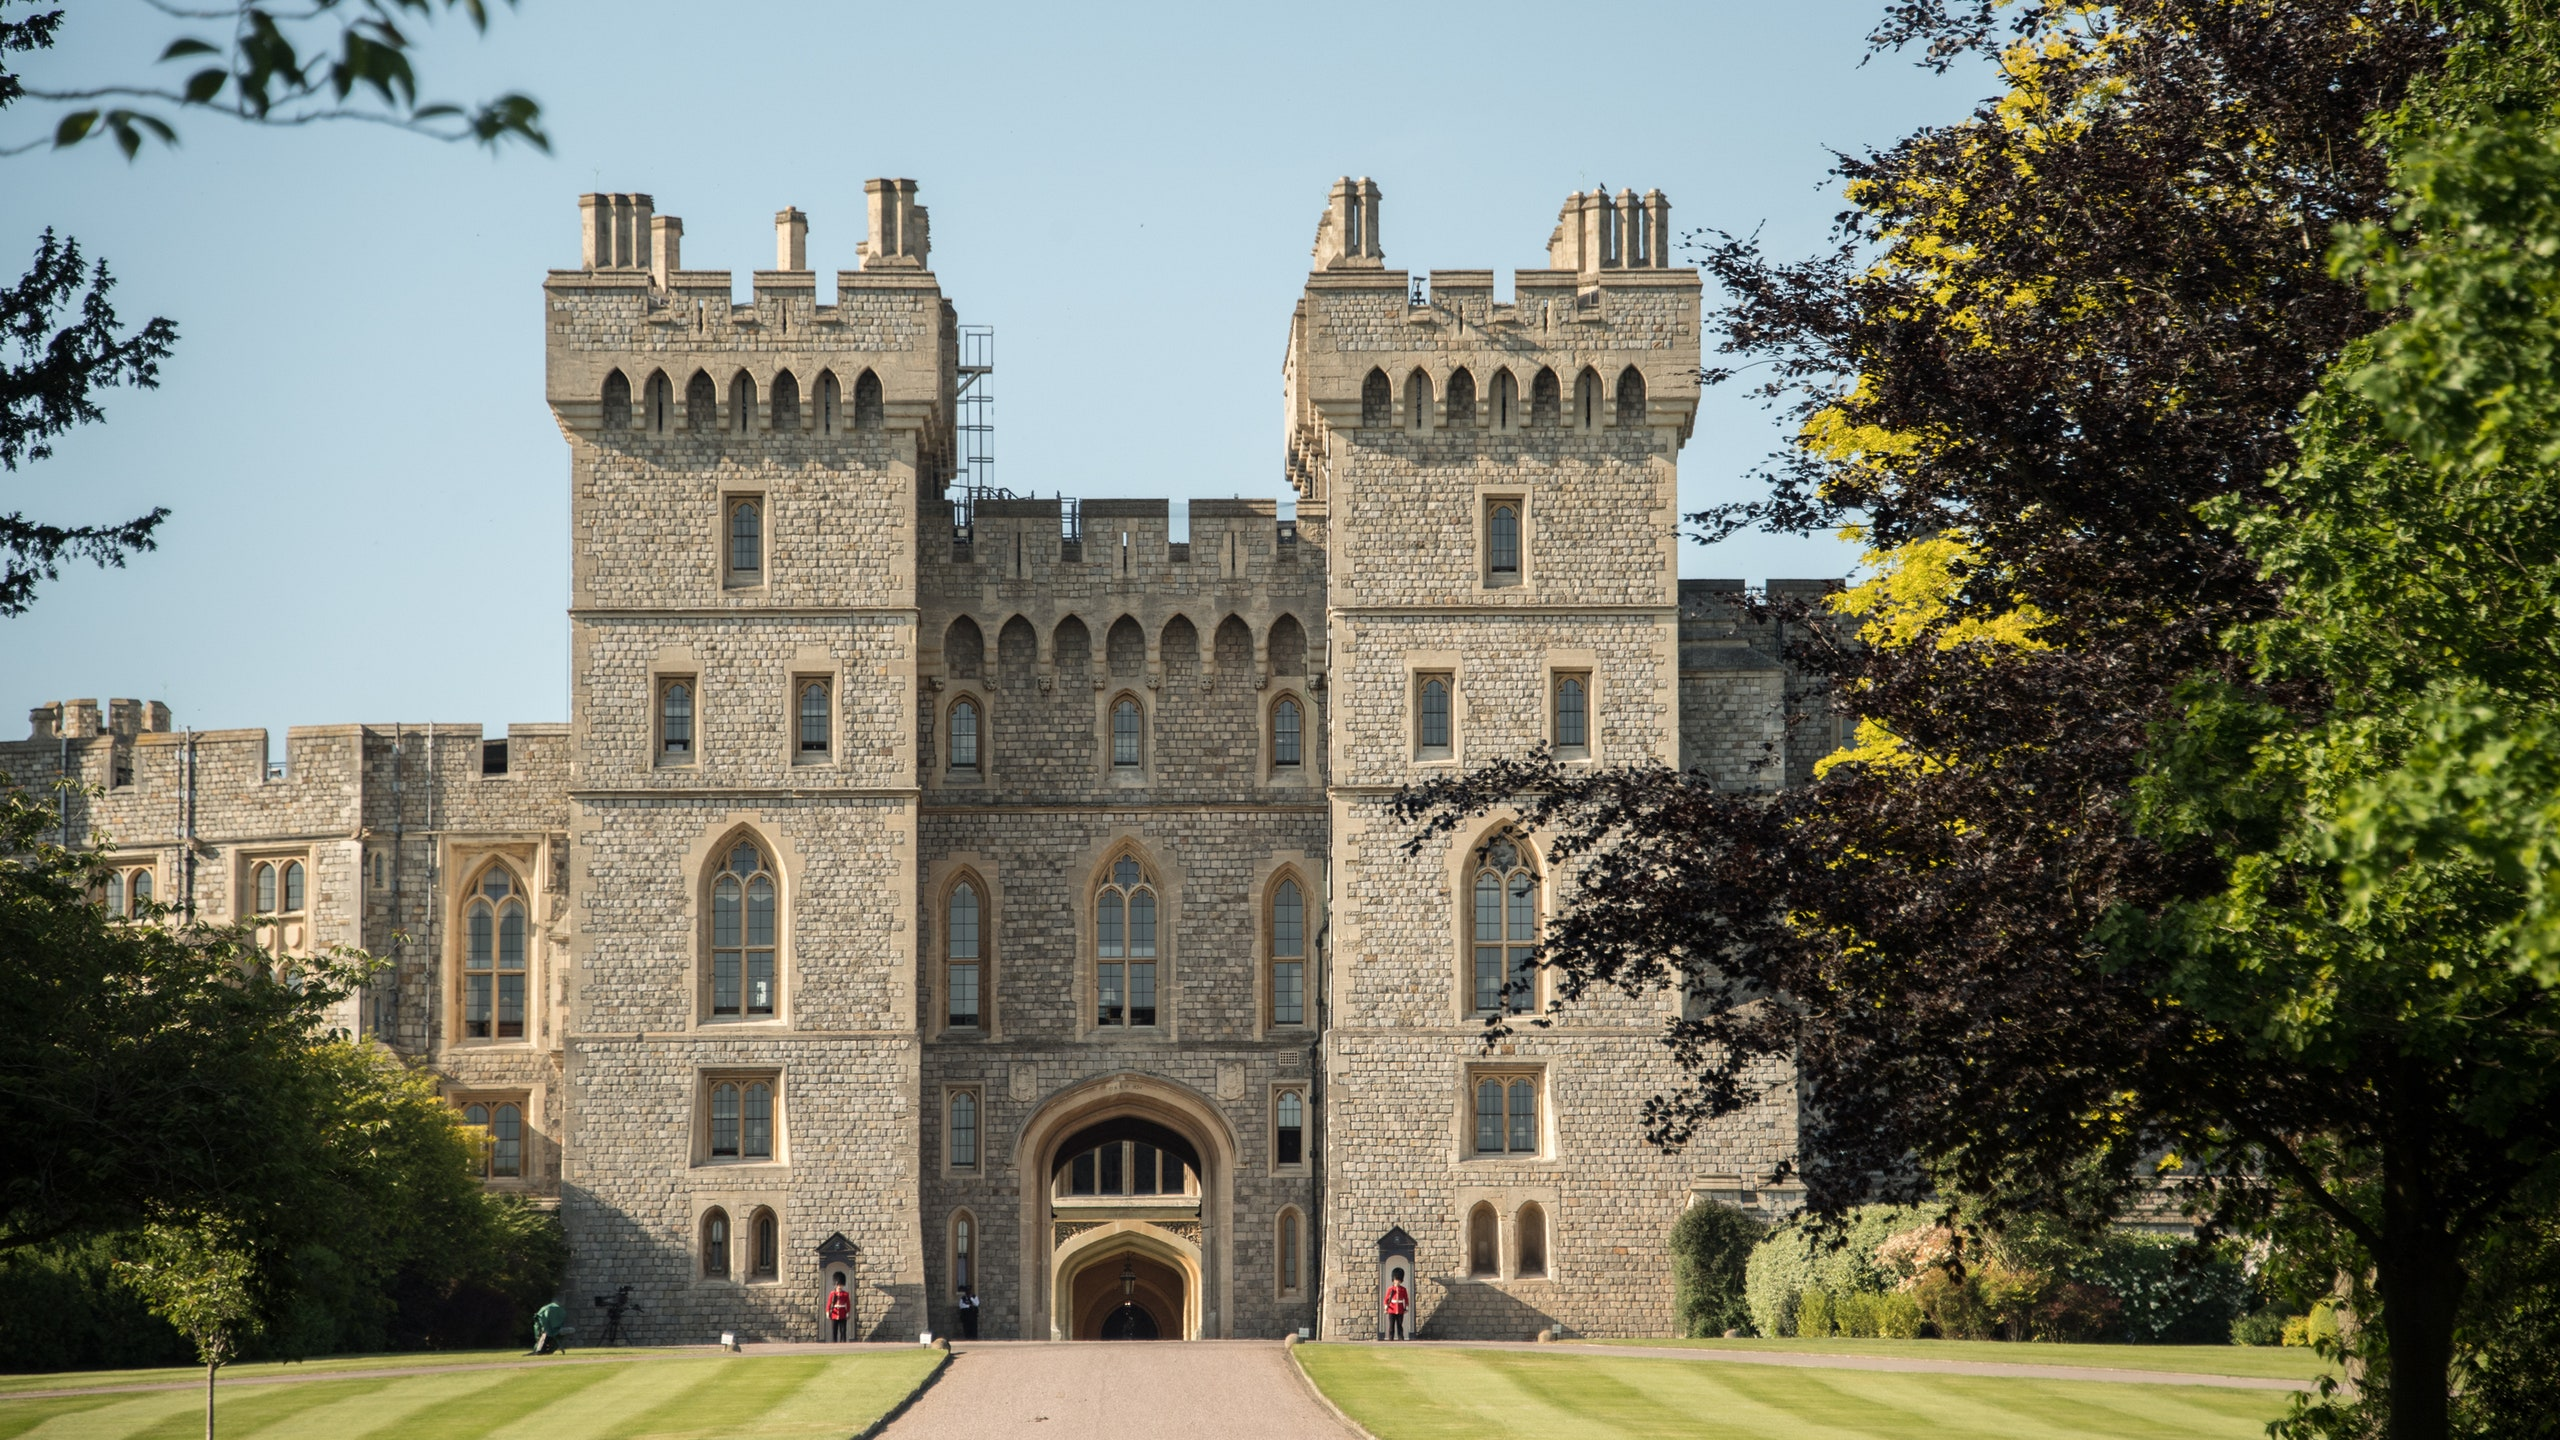 The Prince Philip Residence is more than just a view